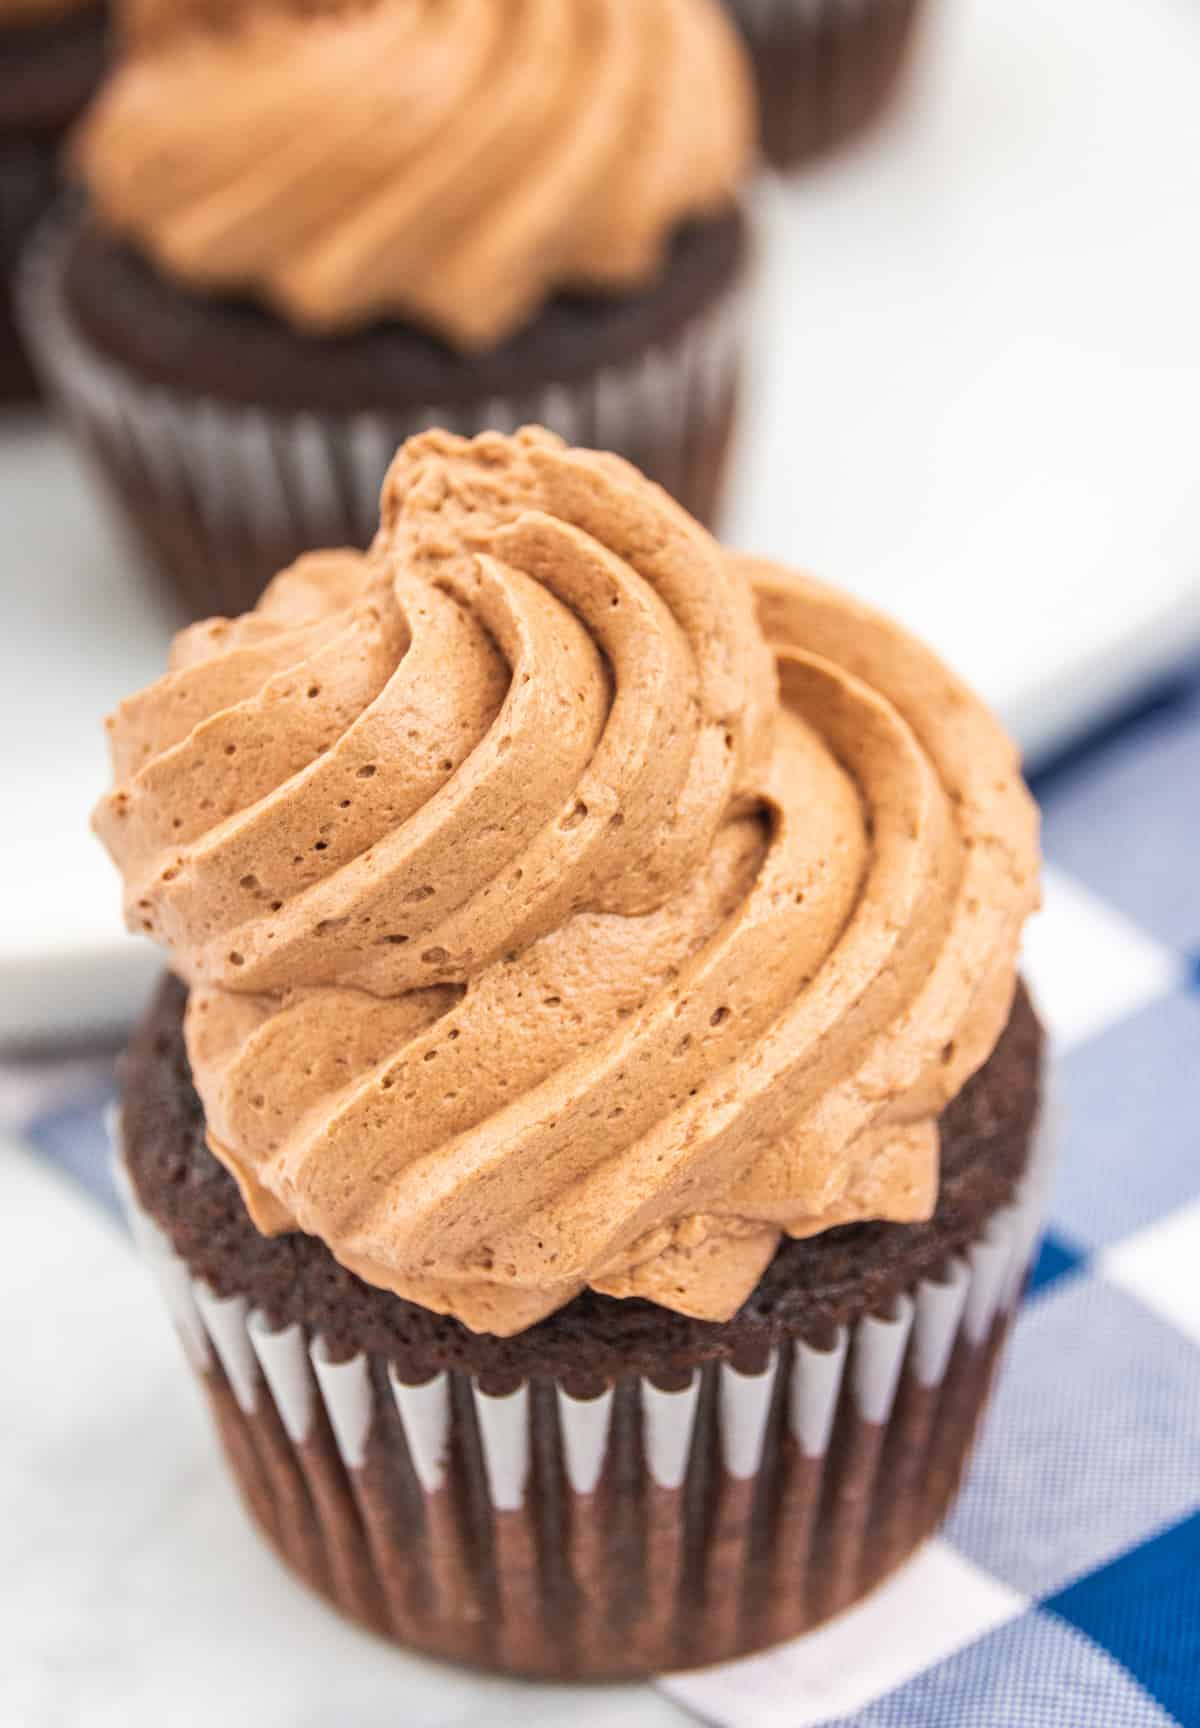 fluffy chocolate frosting on a cupcake